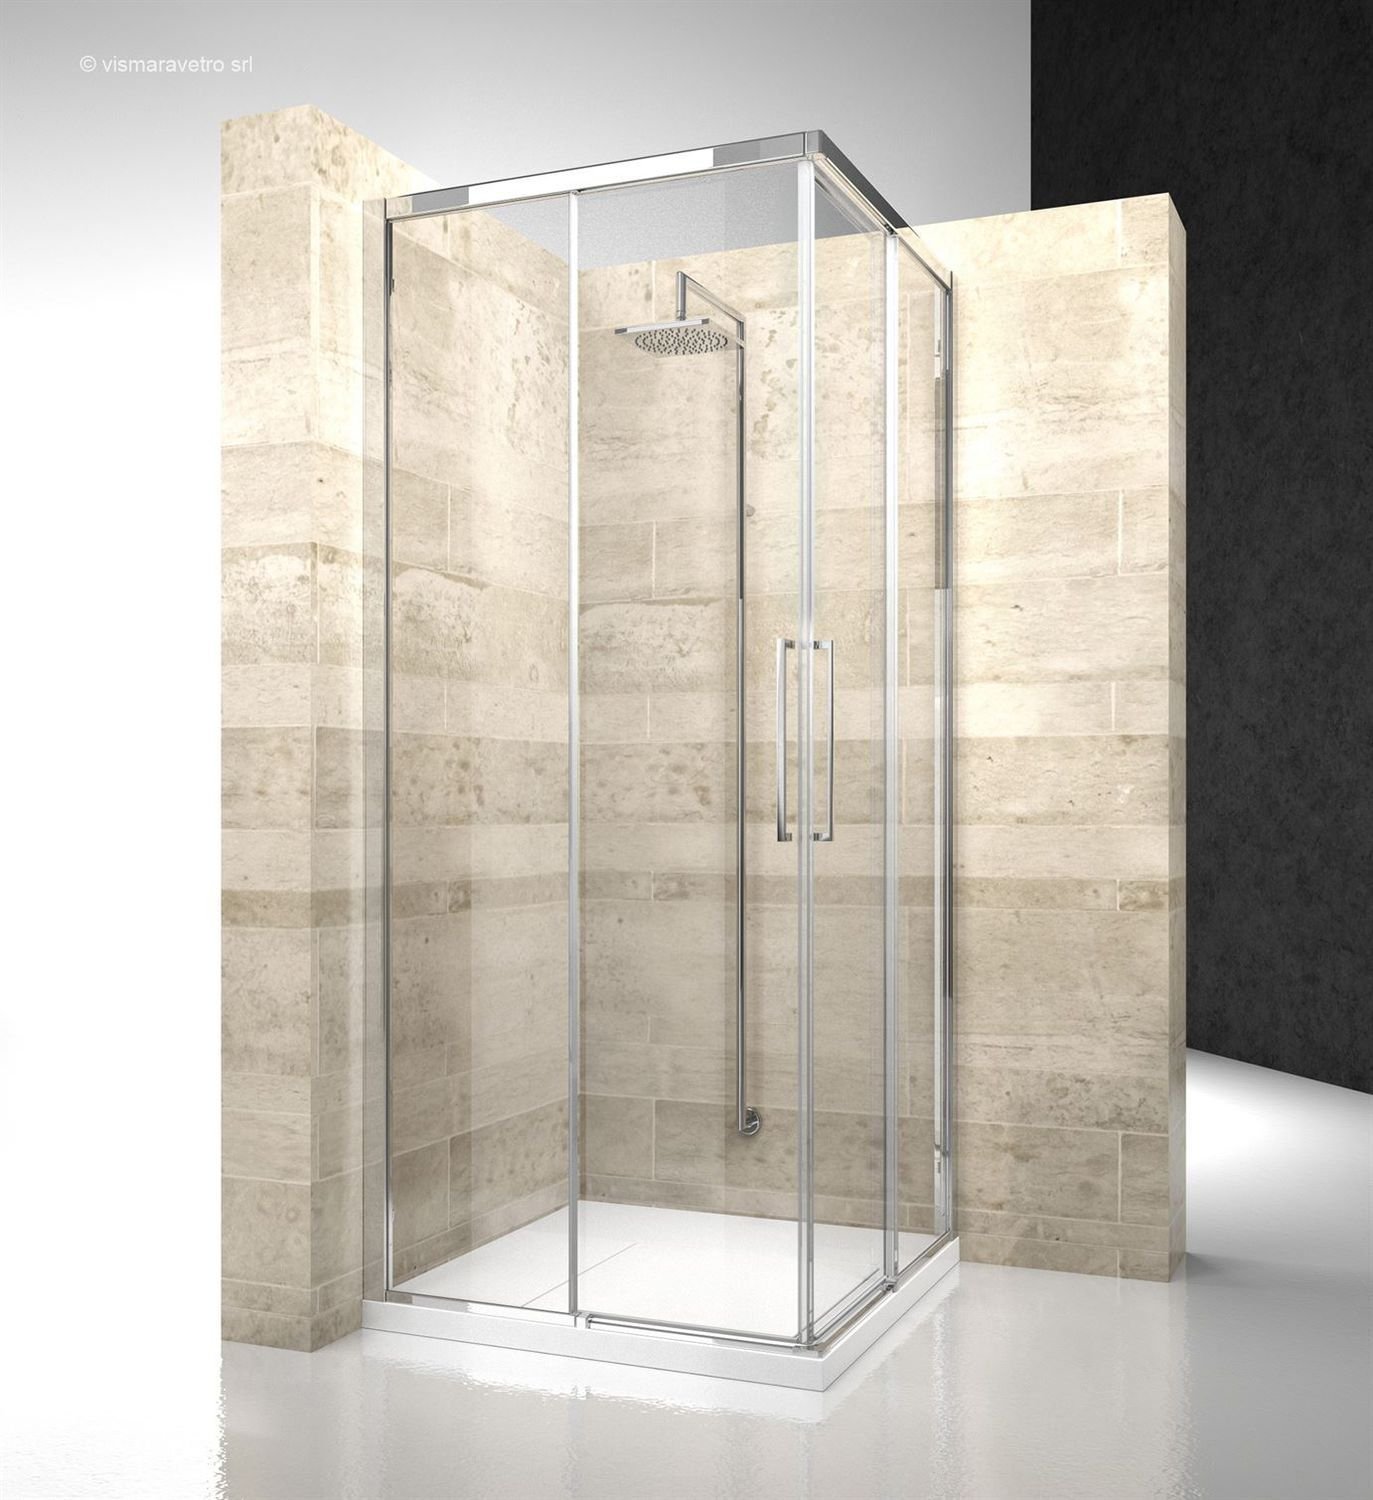 Glass shower enclosure / corner / with sliding door / residential ...